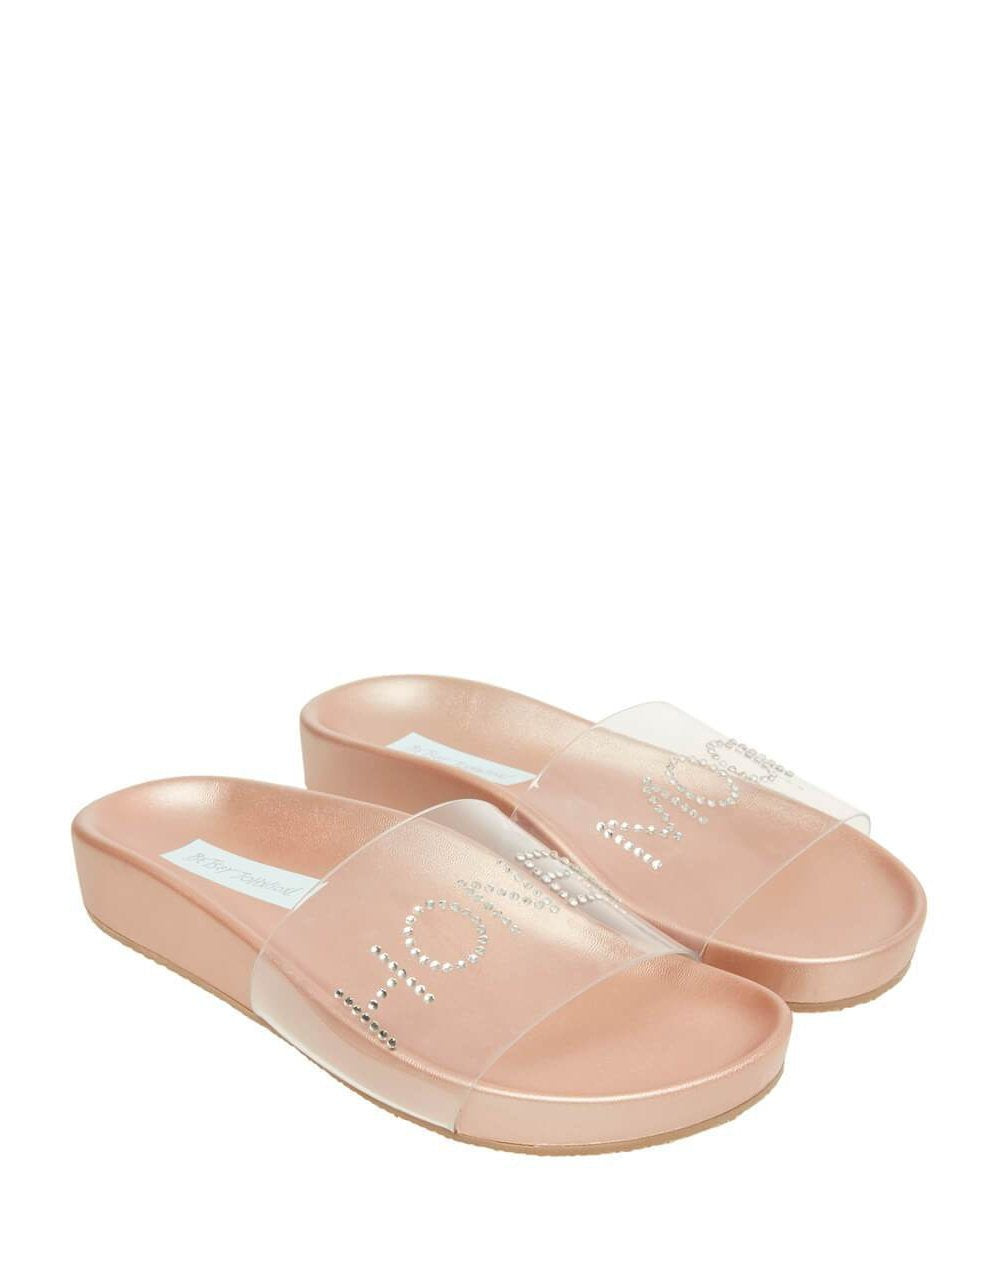 SB-BALI NUDE - SHOES - Betsey Johnson